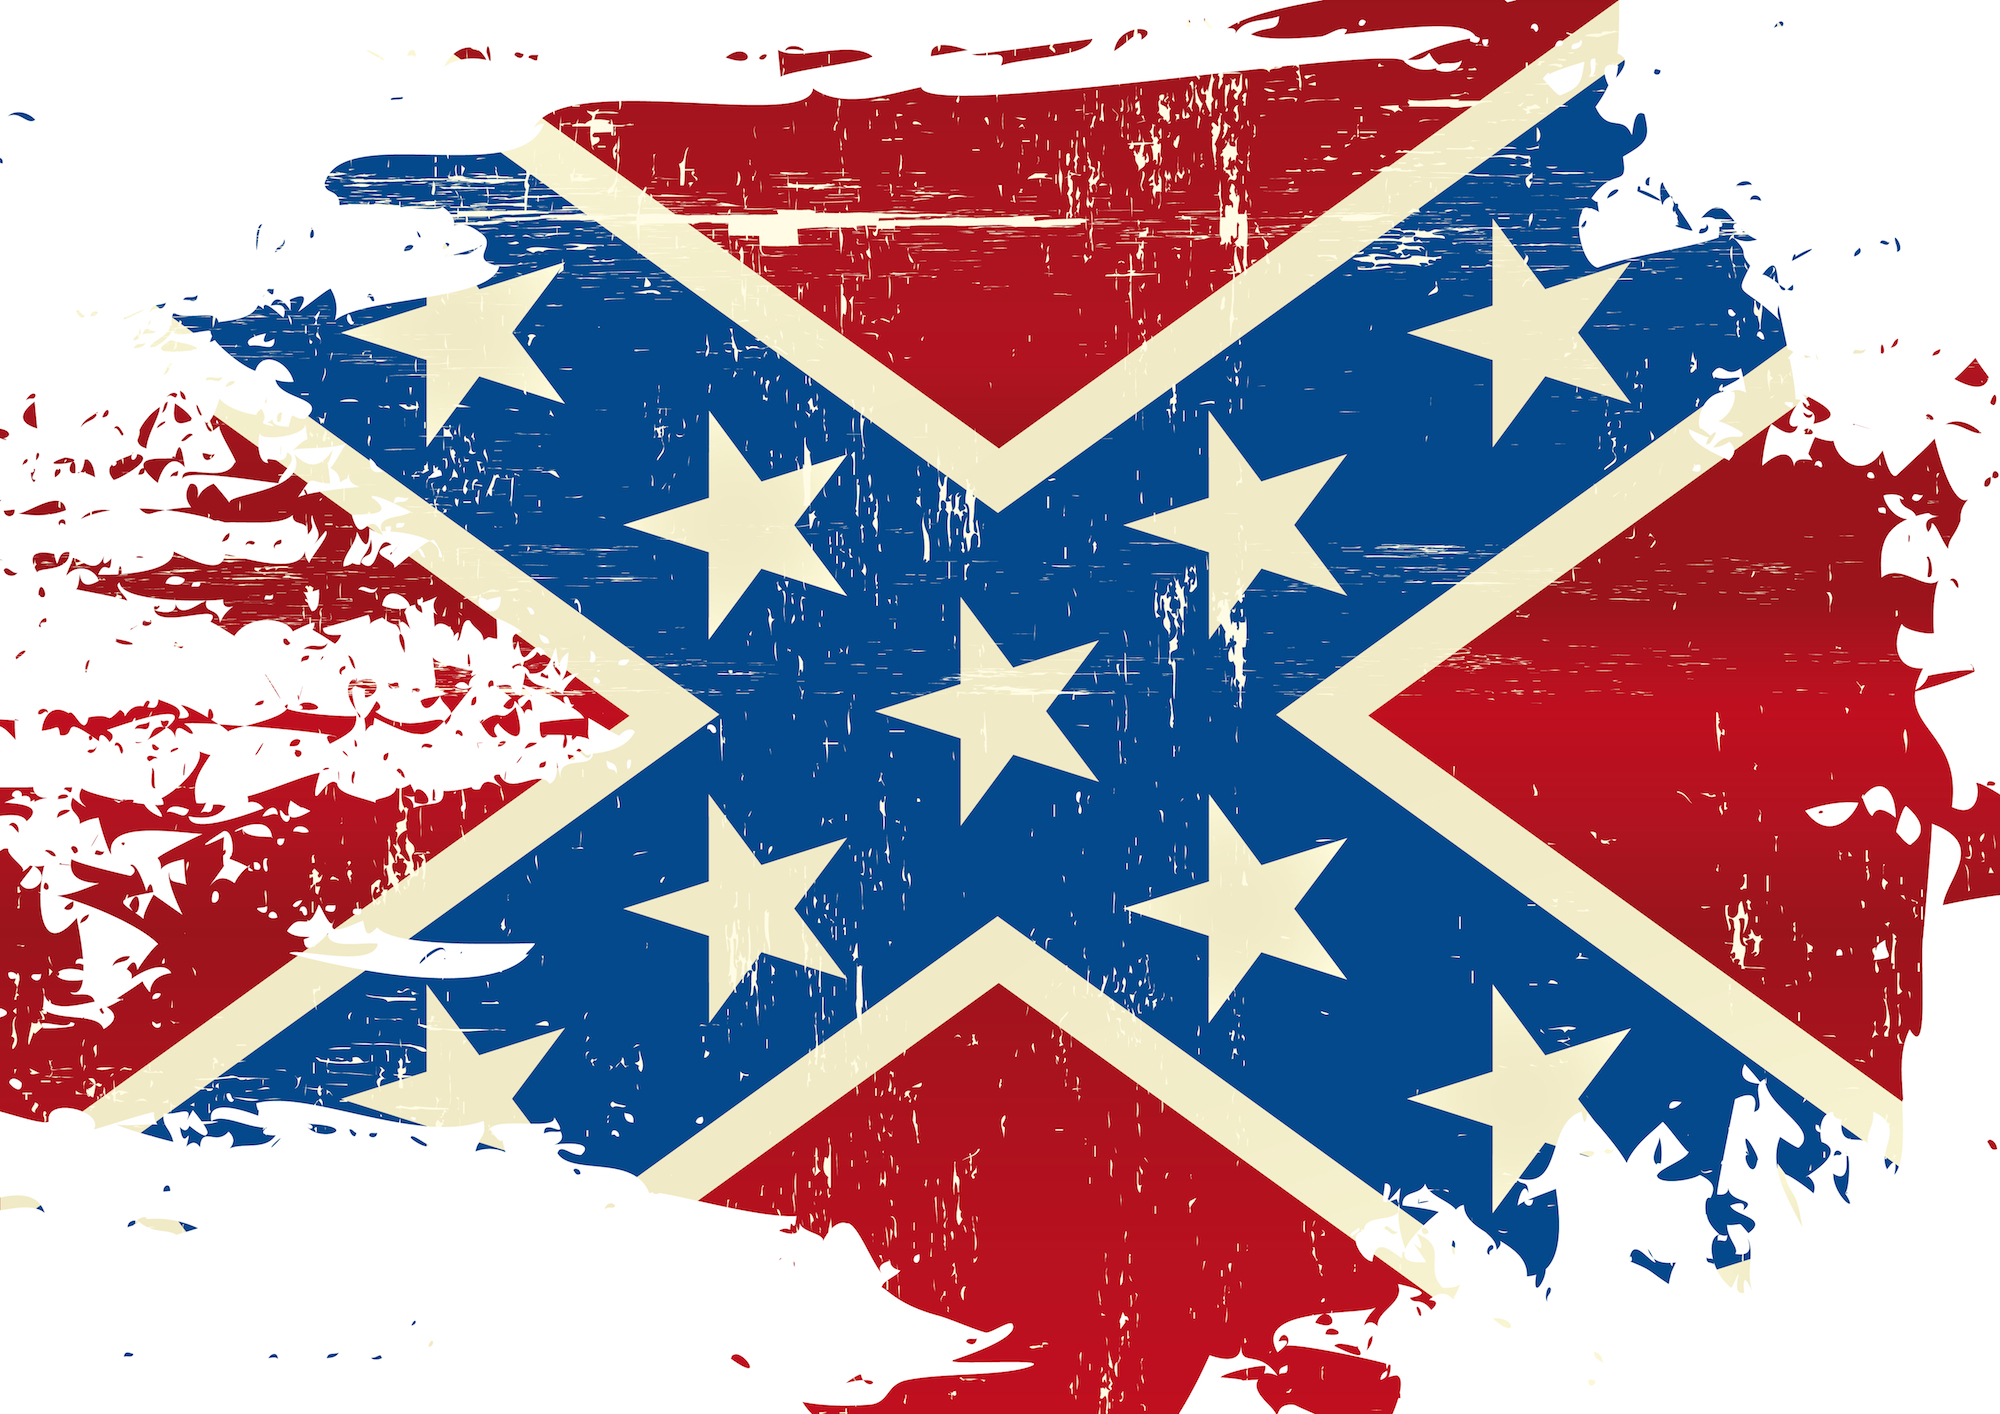 It's time to take down the Confederate flag